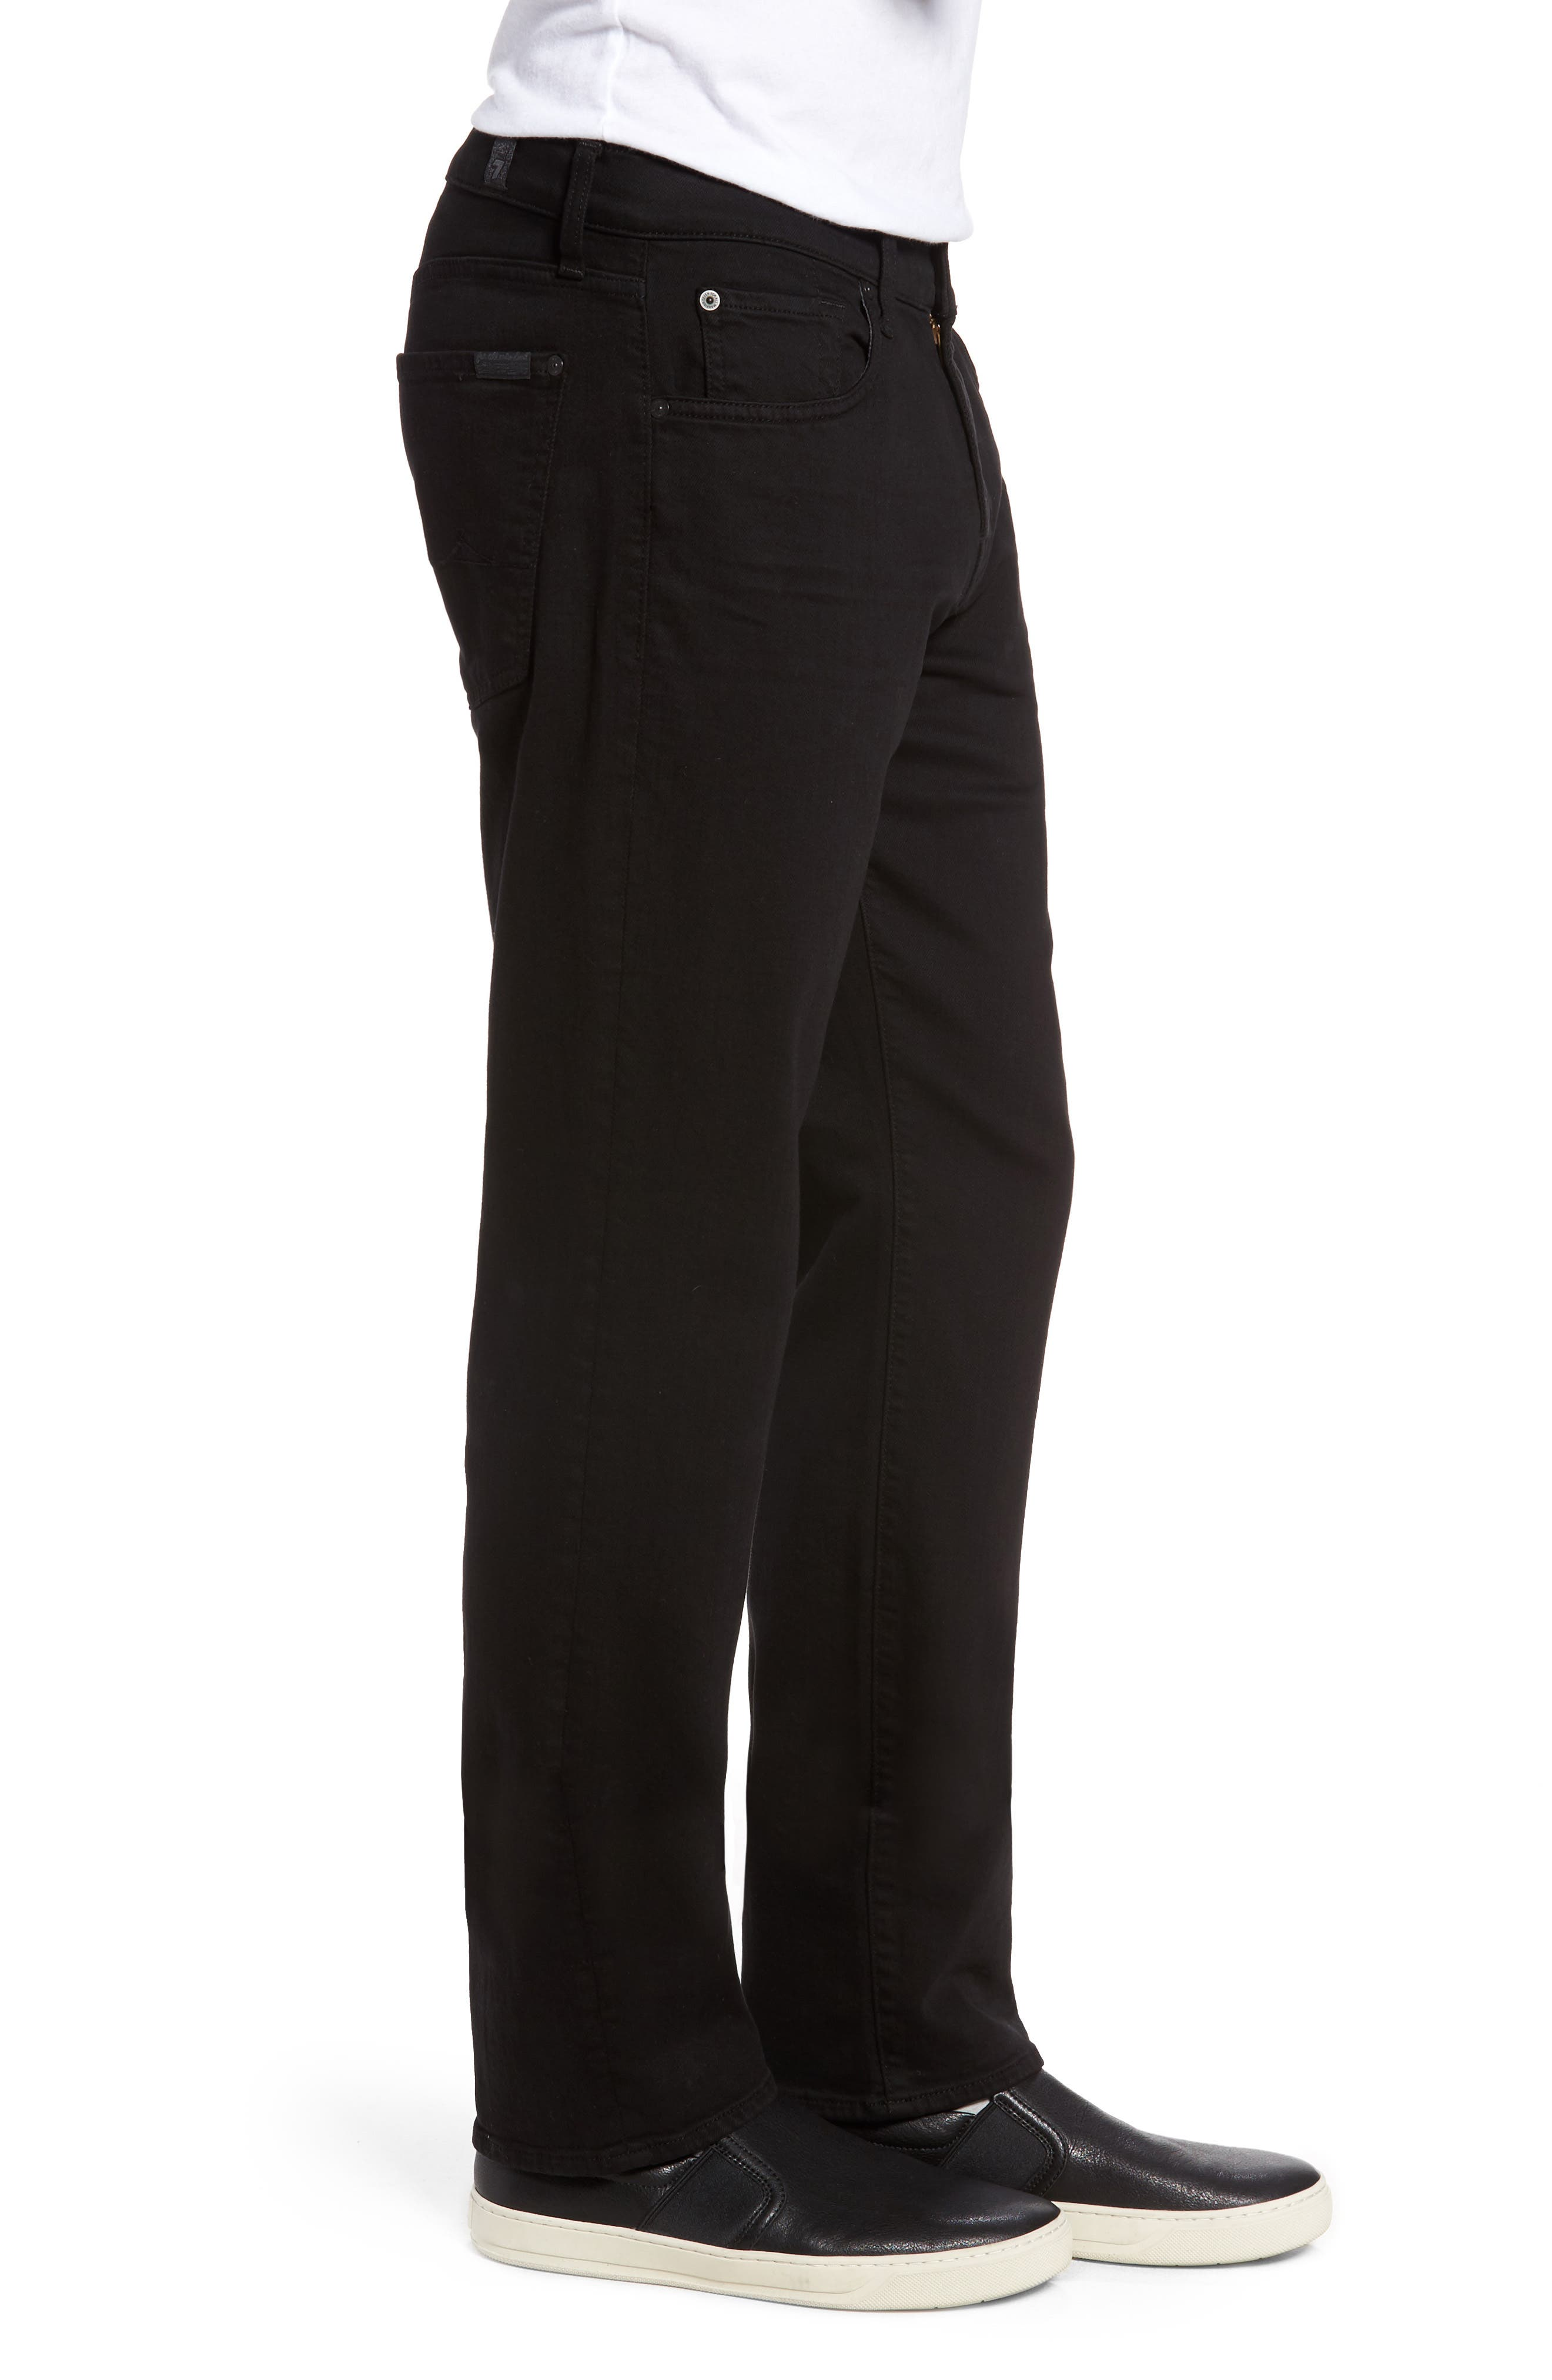 7 FOR ALL MANKIND<SUP>®</SUP>, Luxe Performance - Slimmy Slim Fit Jeans, Alternate thumbnail 3, color, ANNEX BLACK